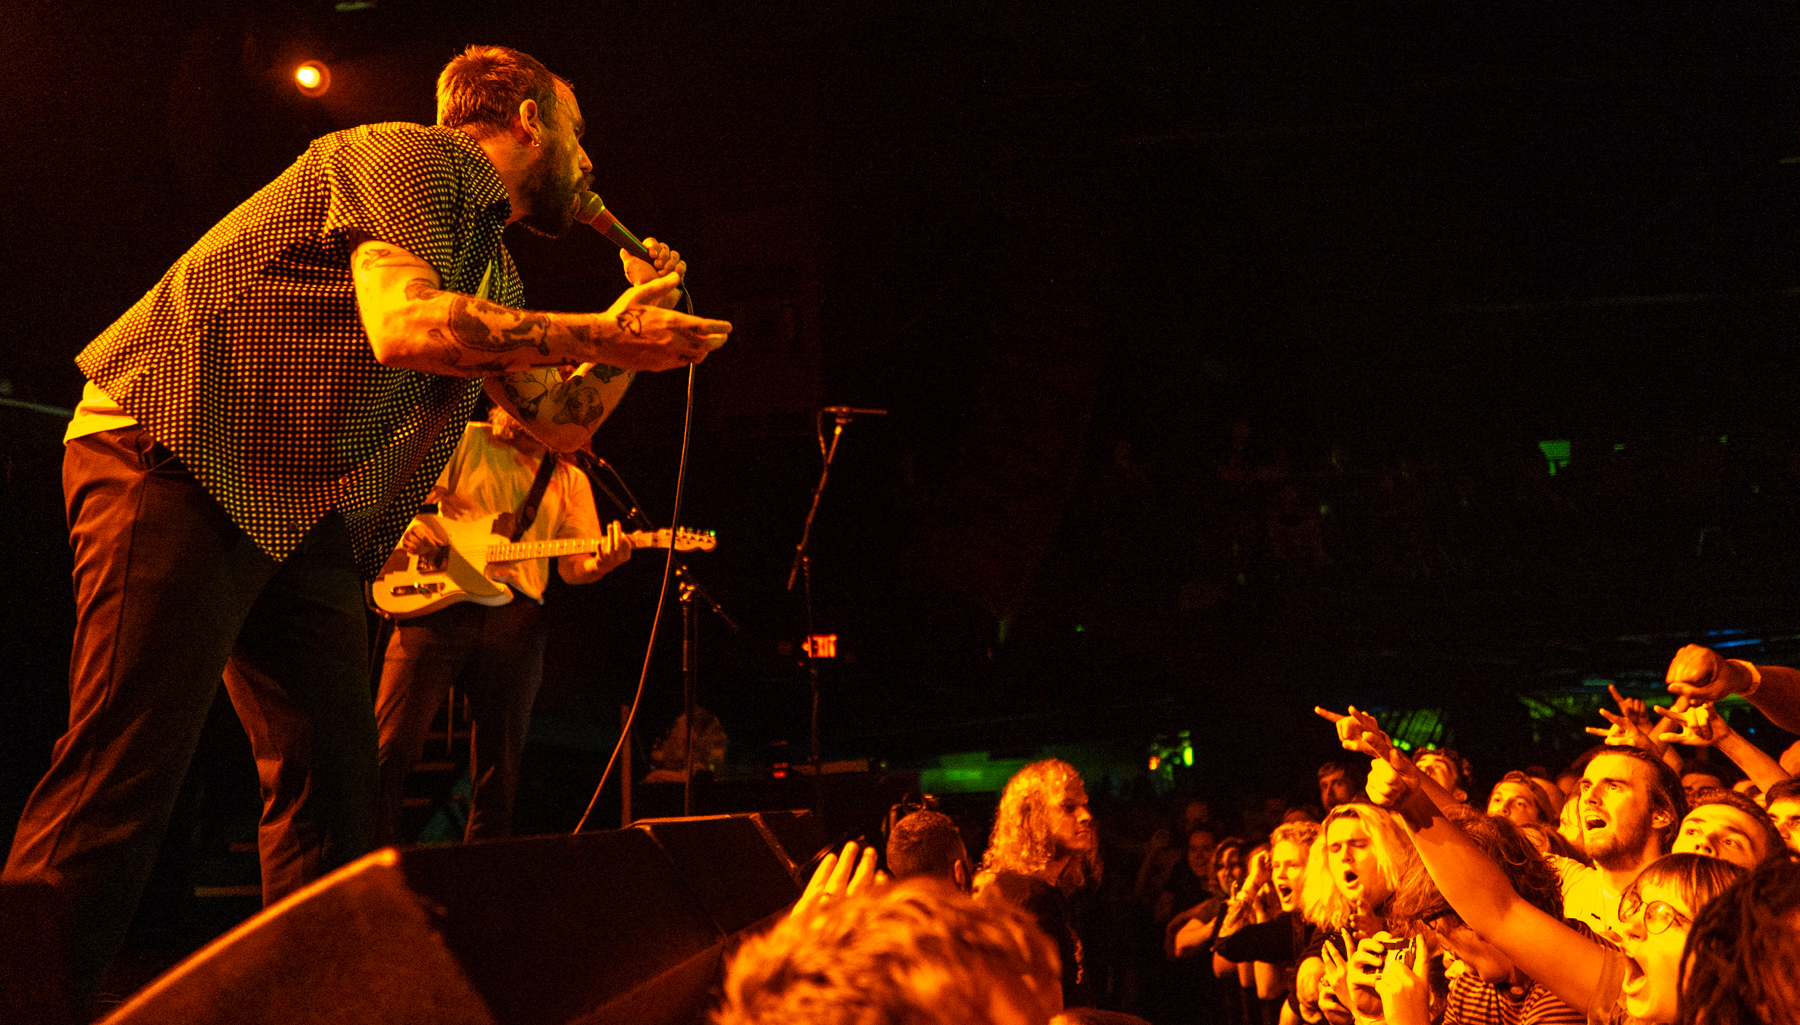 Idles_FirstAvenue_080319_Chris_Goyette_35